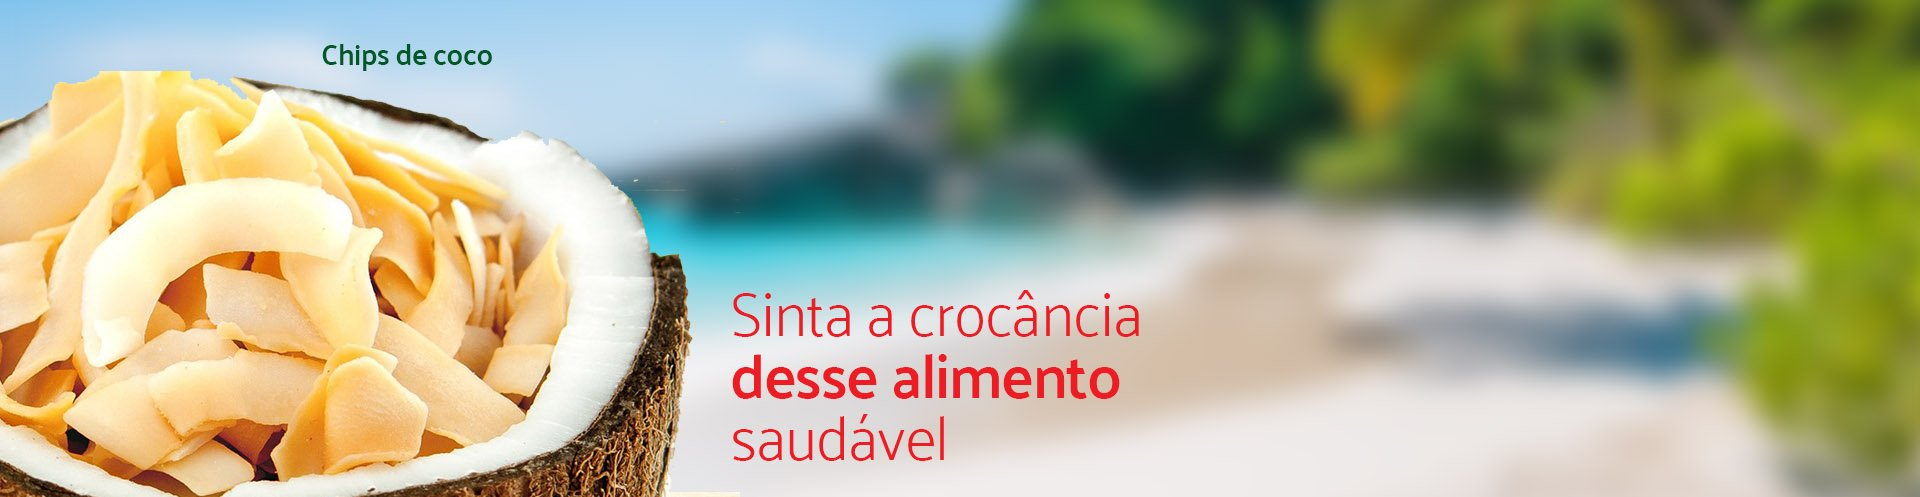 Banner coco